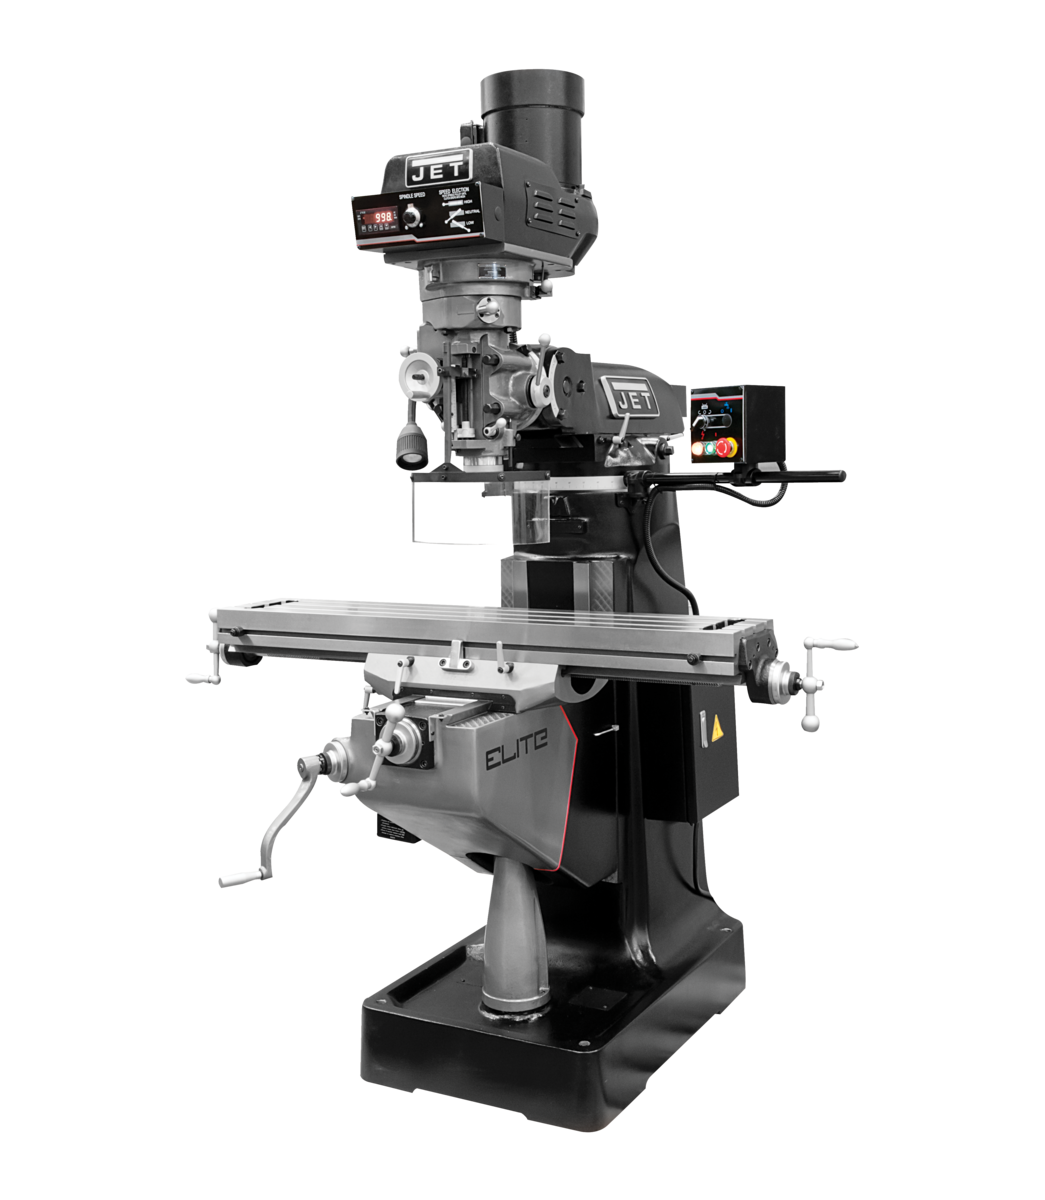 EVS-949 Mill with 3-Axis ACU-RITE 203(Quill) DRO and X, Y-Axis JET Powerfeeds